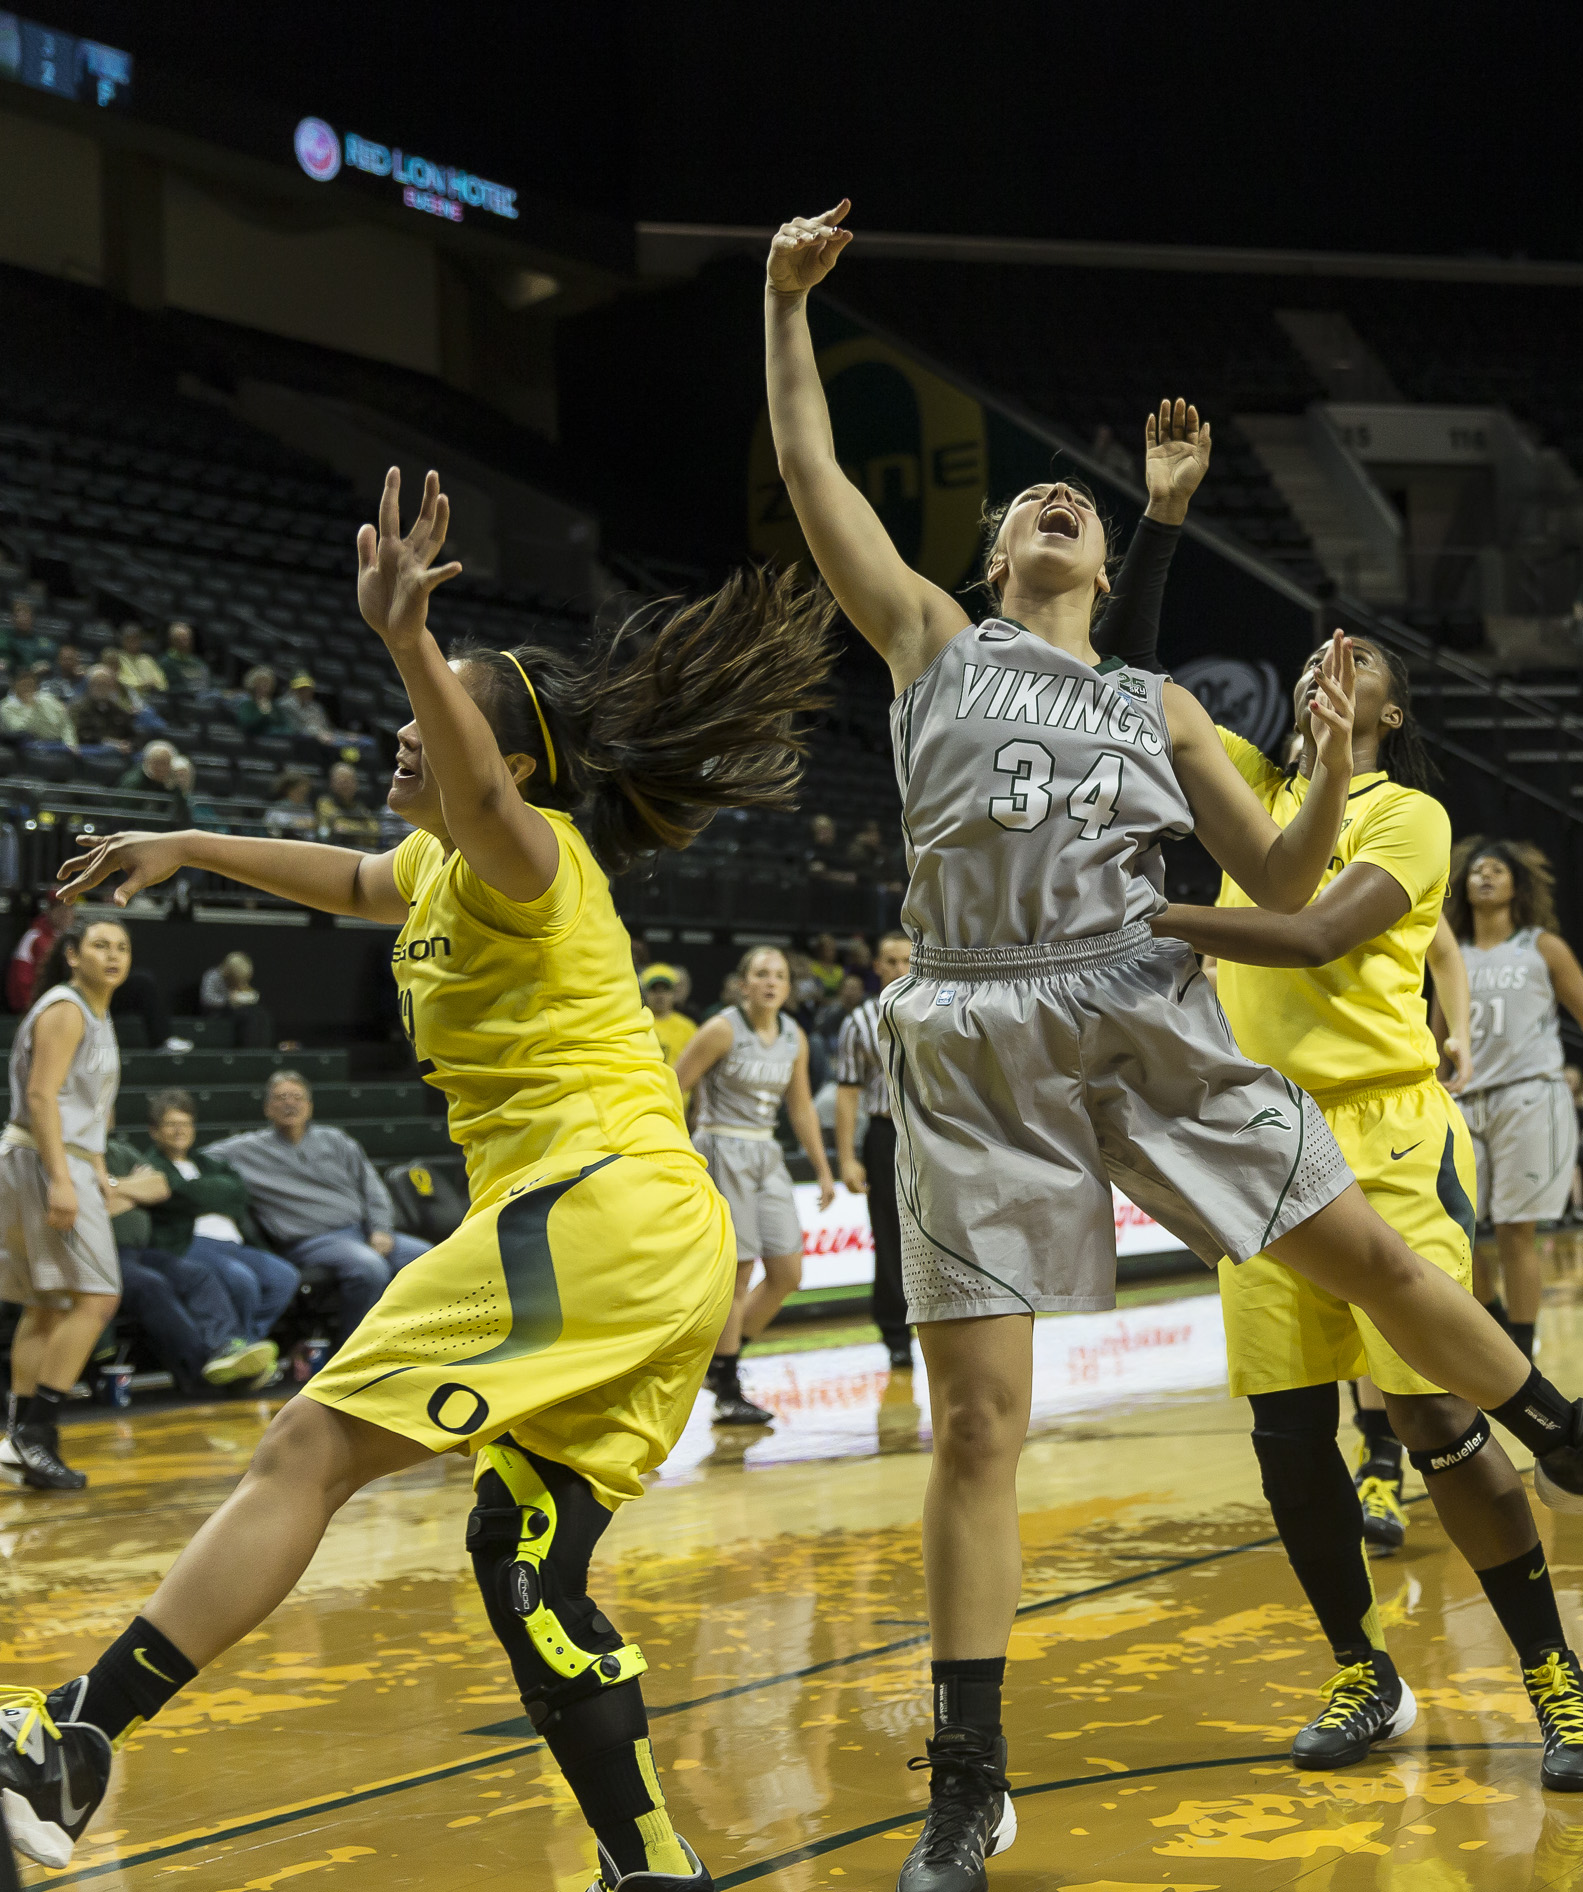 Shot attempt by Allie Brock of Portland State